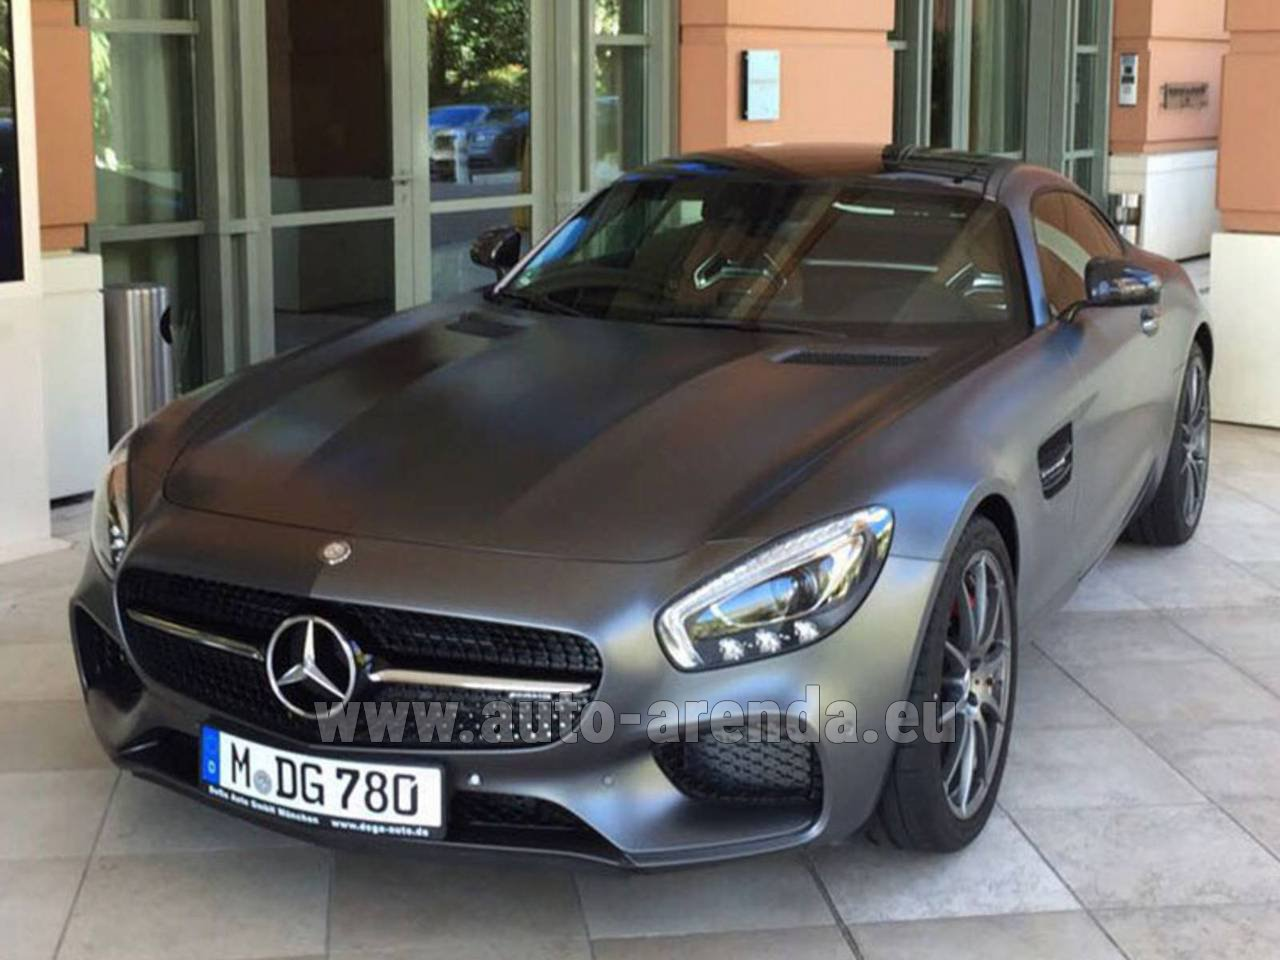 Monte carlo mercedes benz gt s amg rental for Mercedes benz rental prices